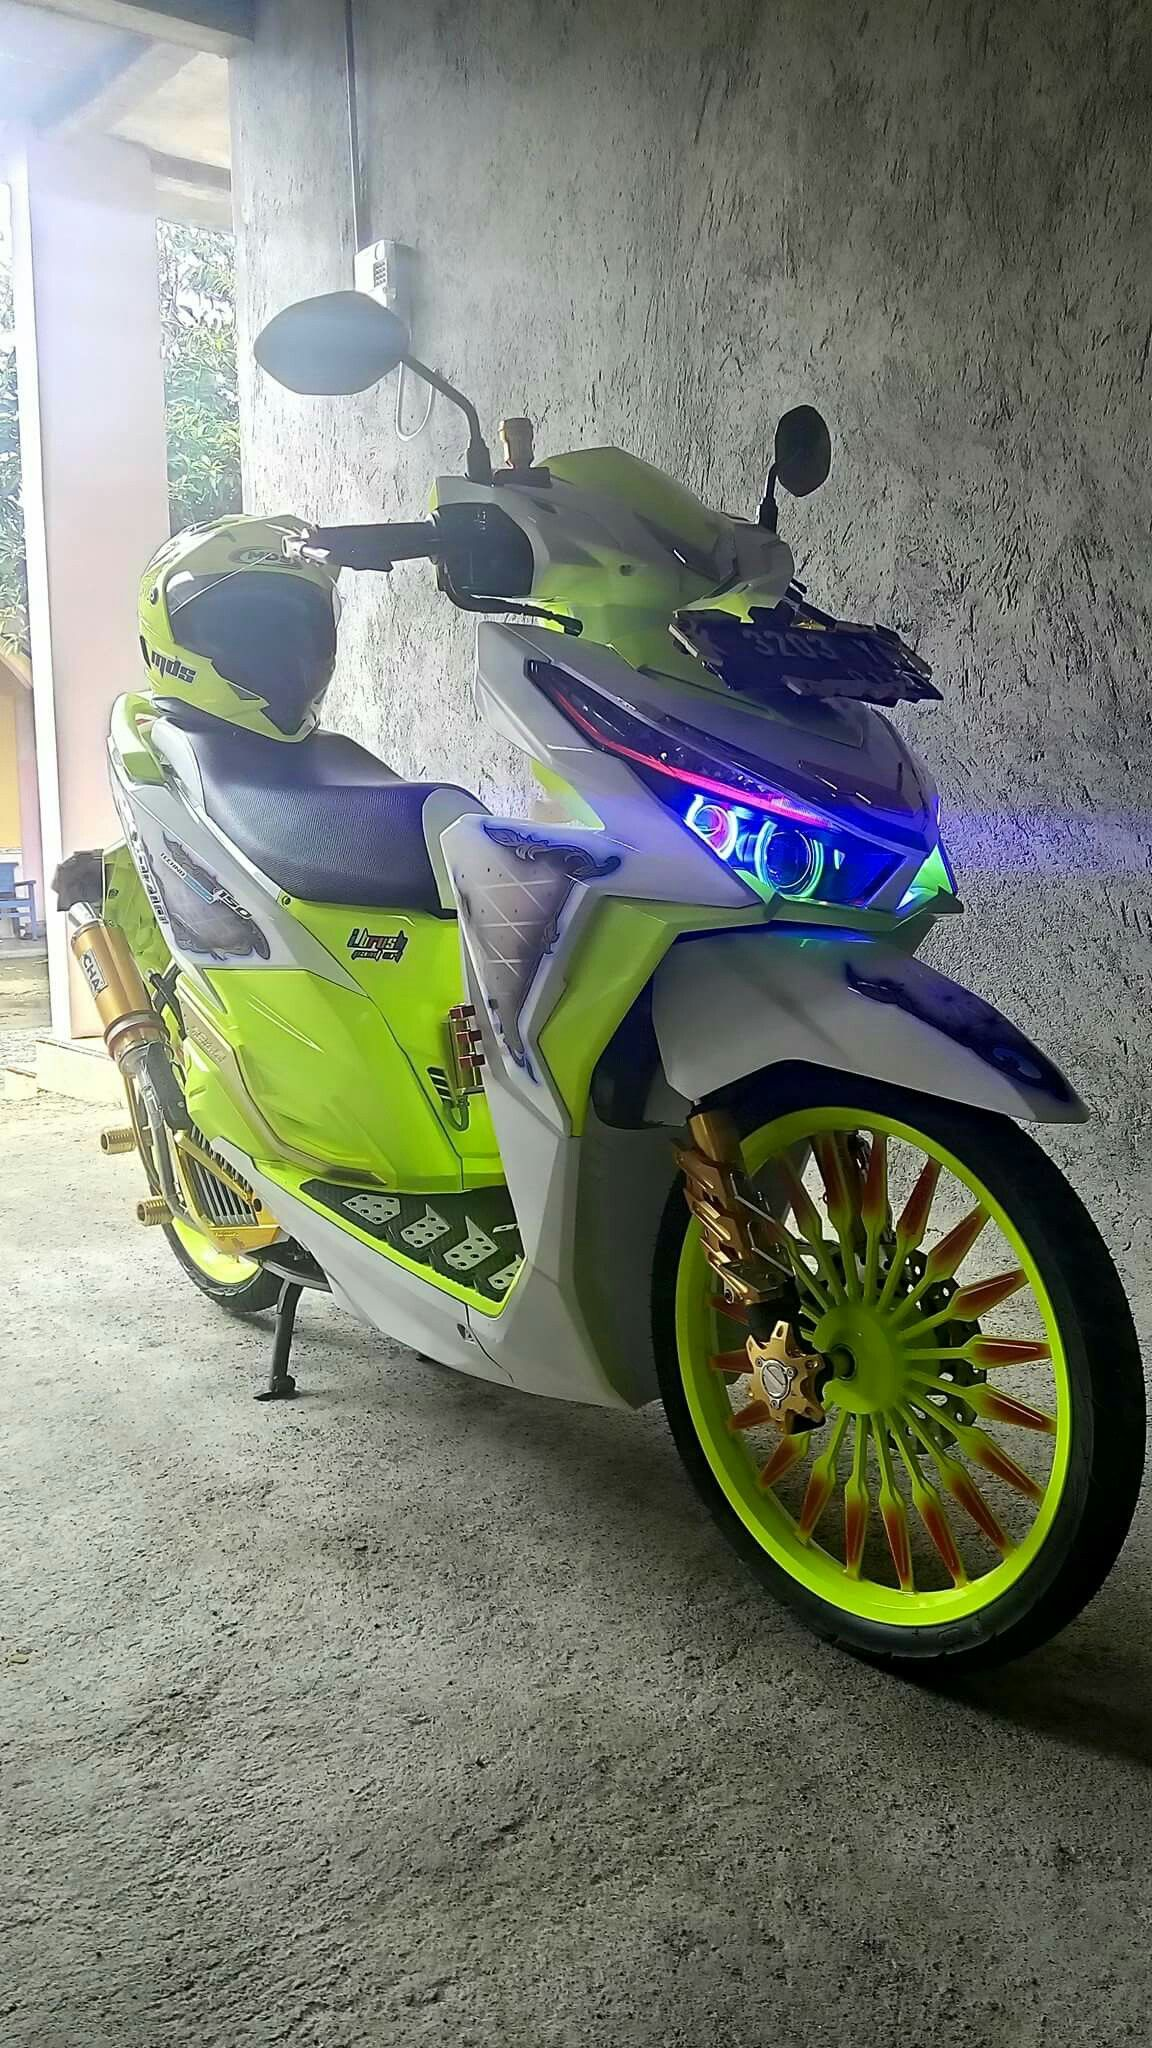 Pin By Its Me On Vario 150 Pinterest Scooters